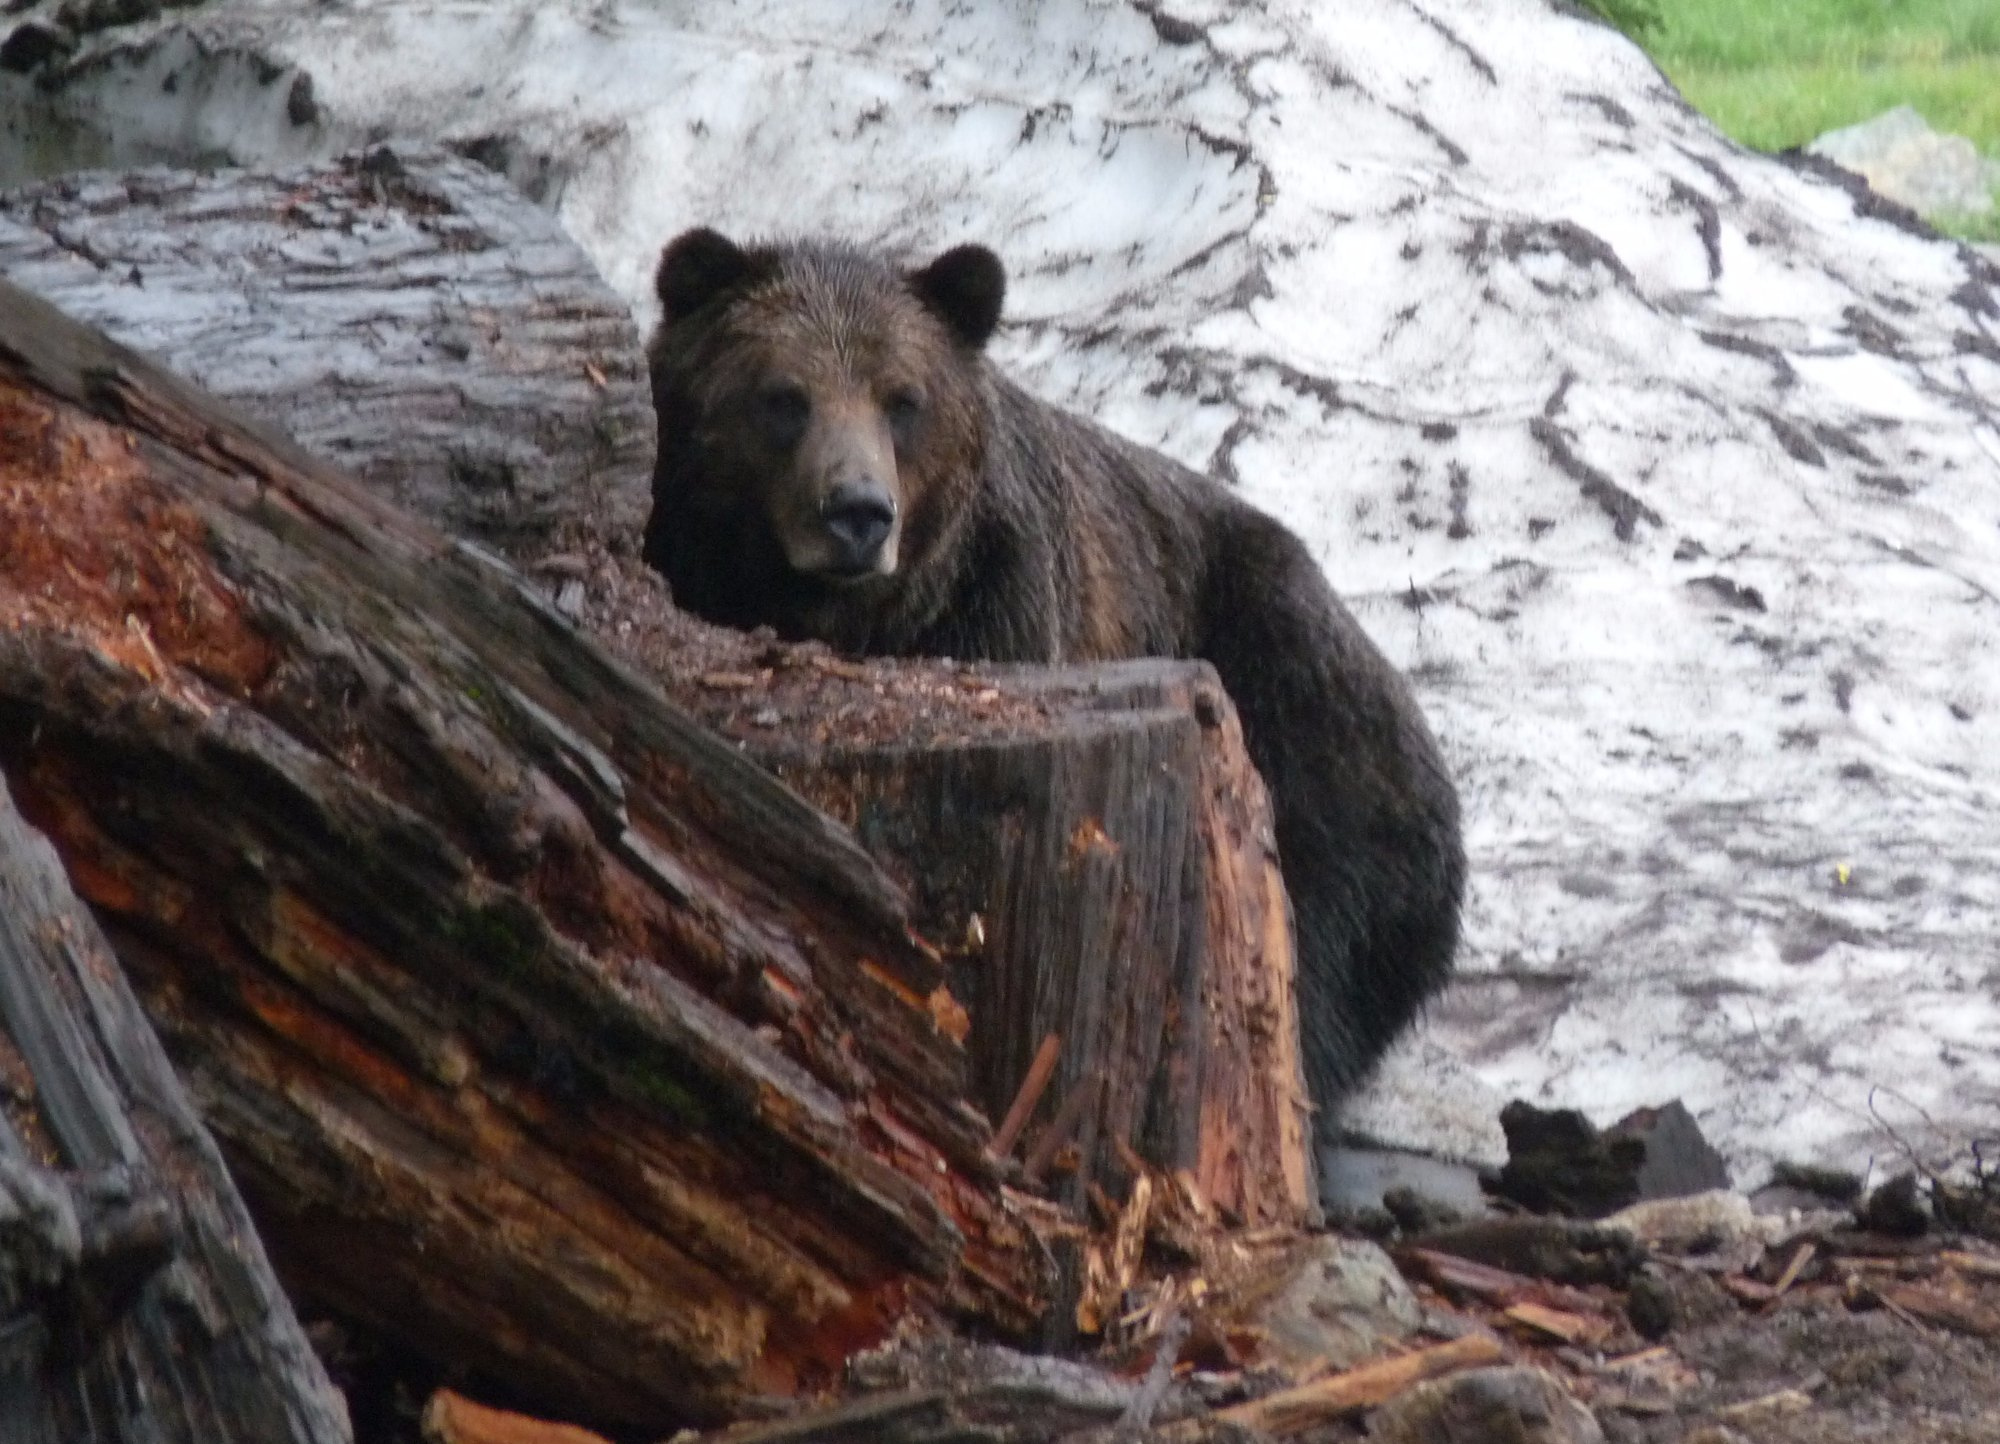 Rescued Bear on Grouse Mountaion Vancouver